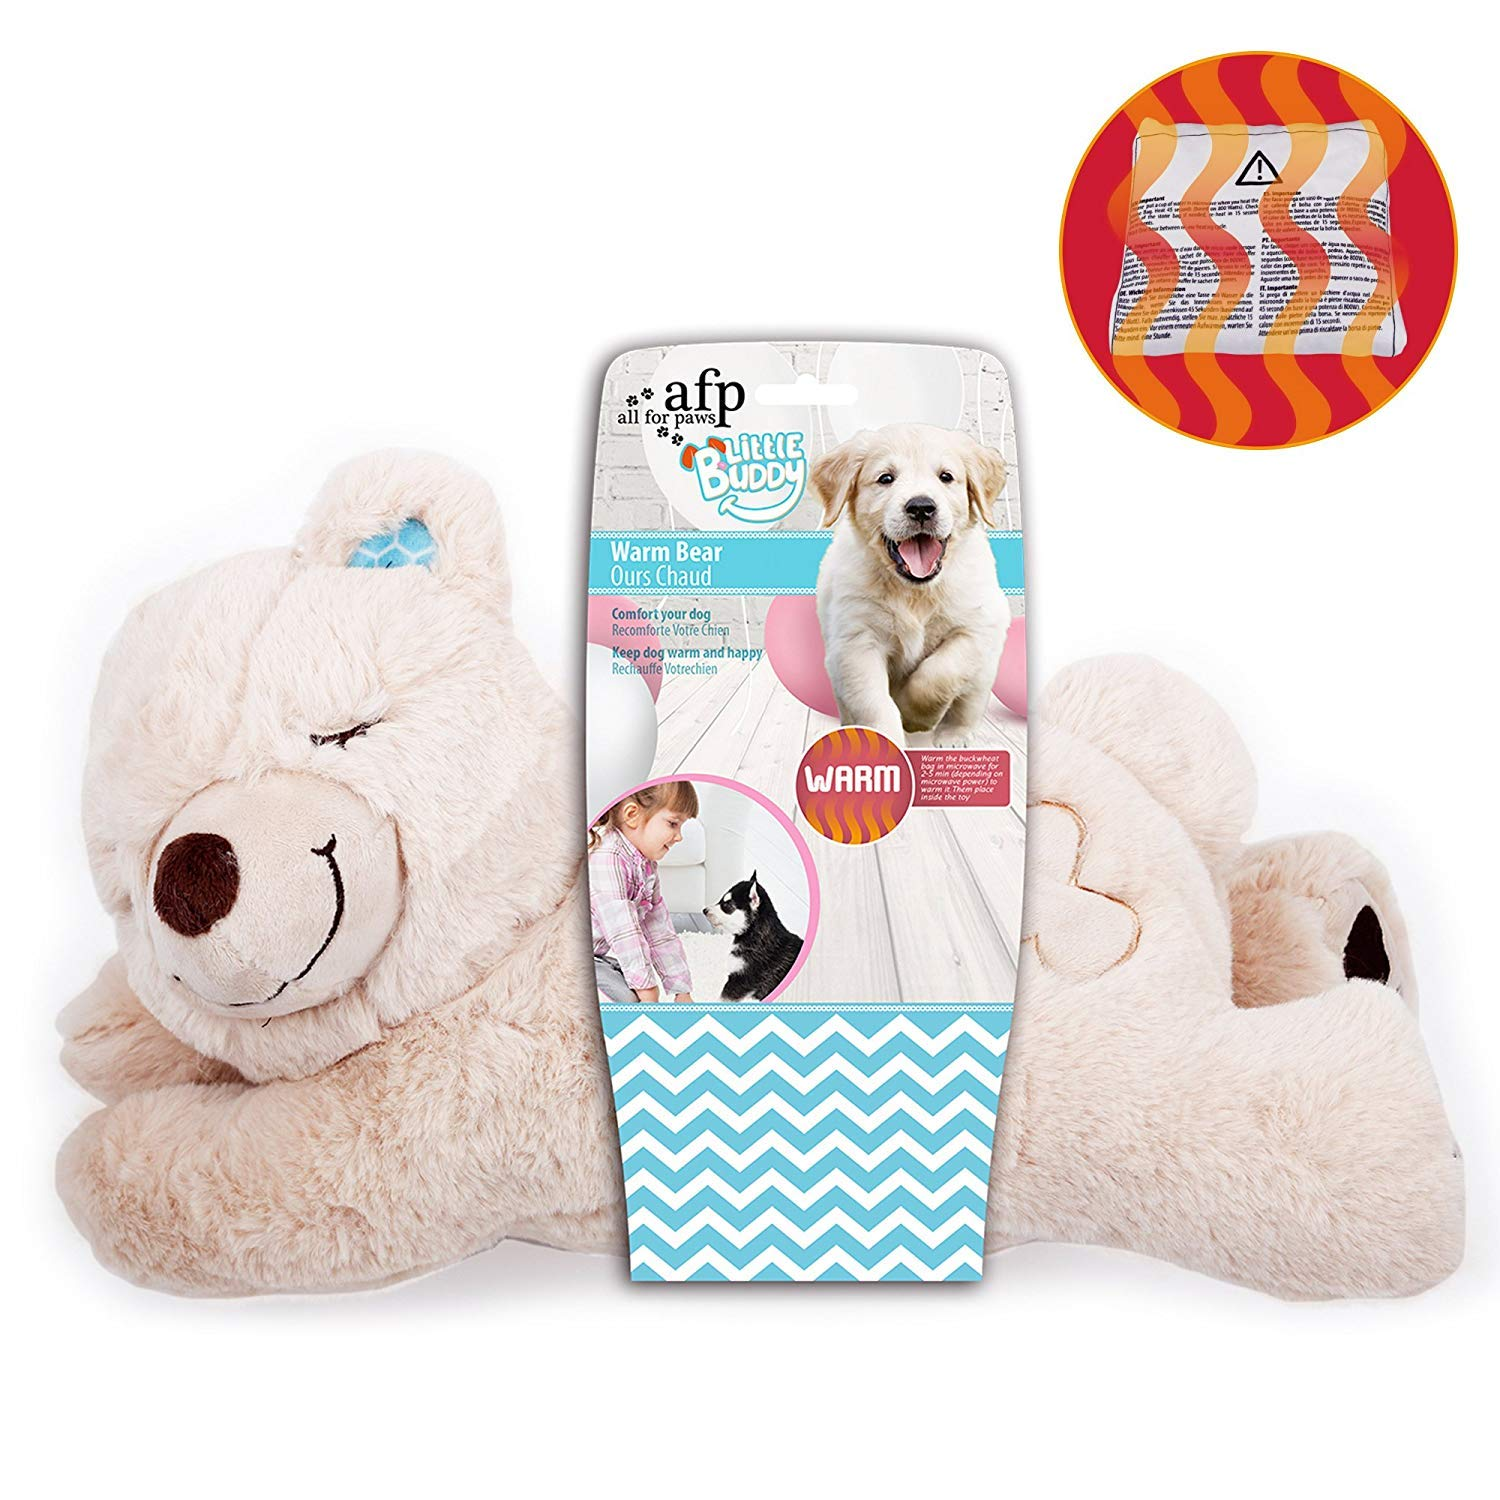 ALL FOR PAWS AFP Snuggle Sheep Pet Behavioral Aid Toy Warm Plush Toy Warm Bear ((No Heartbeat Only Warming Bag)